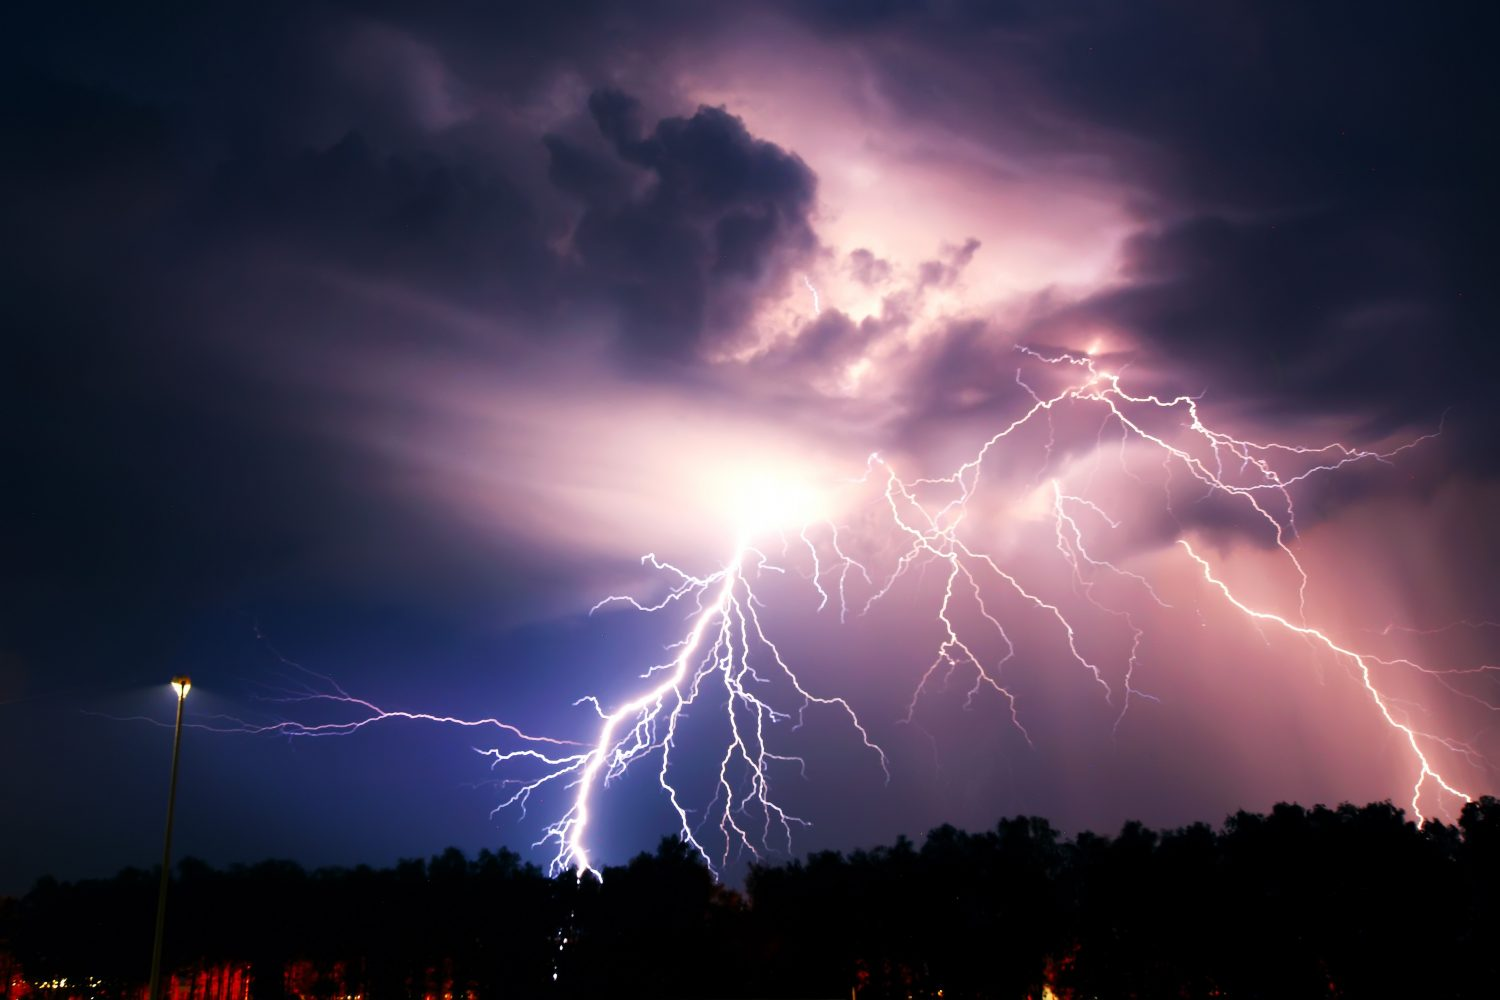 Bitcoin's Lightning Network Just Took a Big Step Toward Interoperability